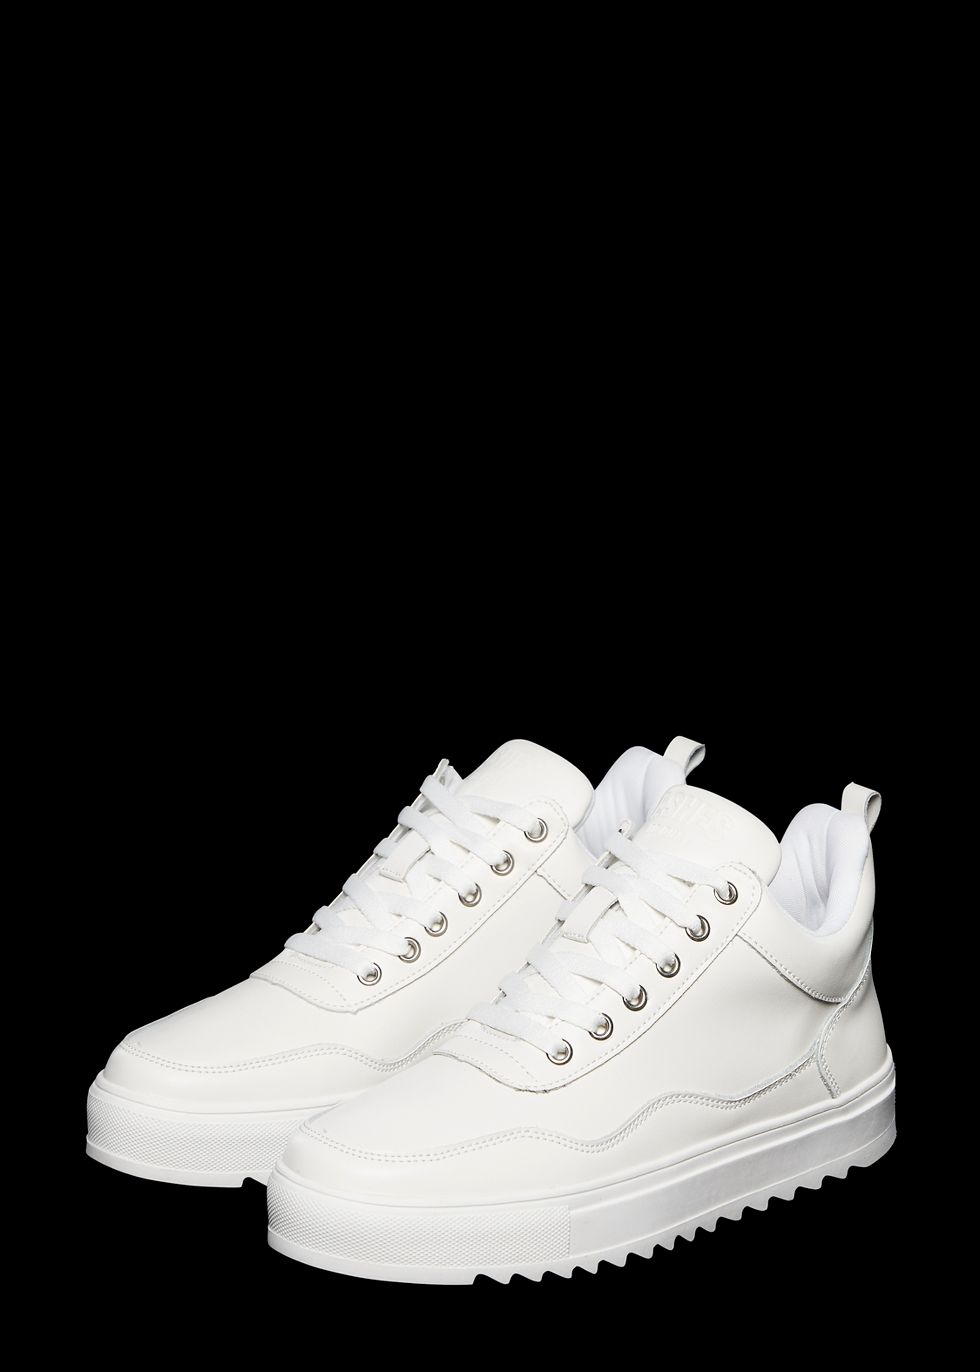 White Sneakers | The Sting